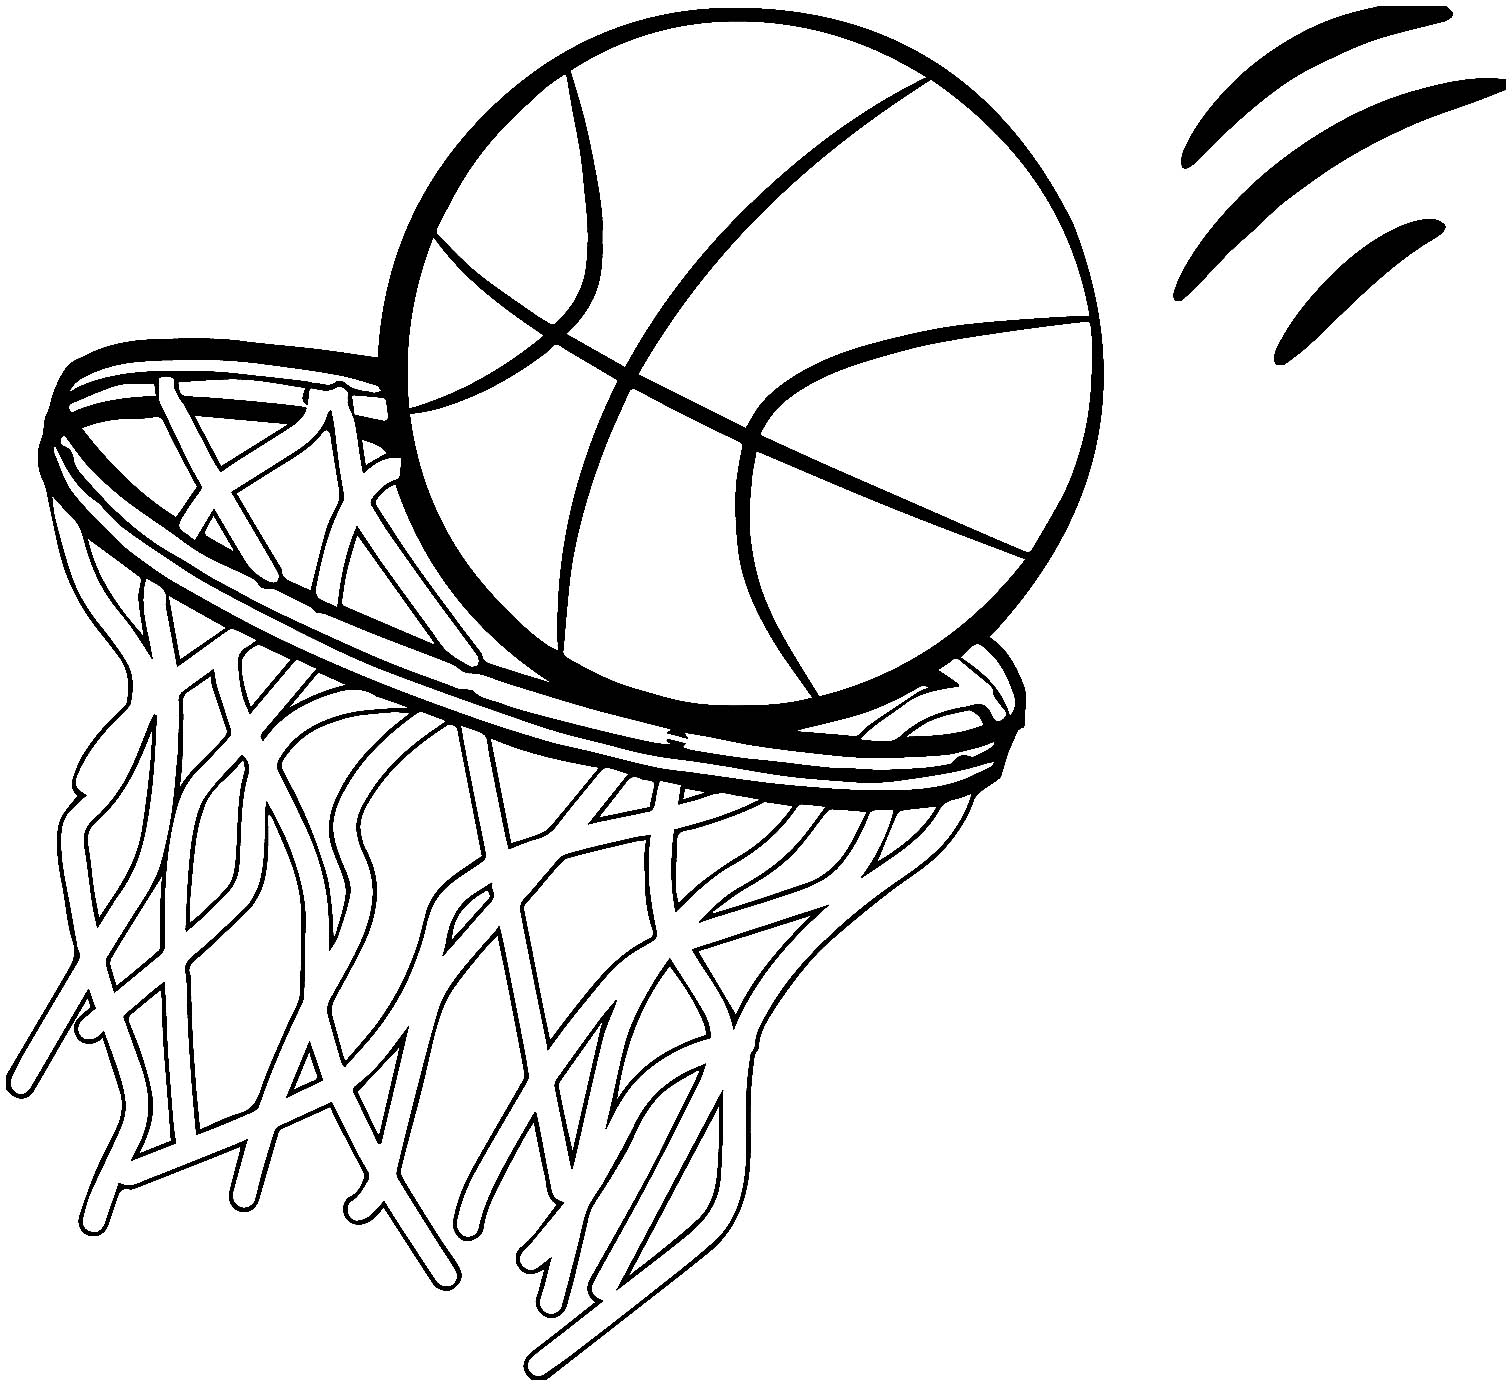 coloring pictures basketball basketball to color for kids basketball kids coloring pages pictures coloring basketball